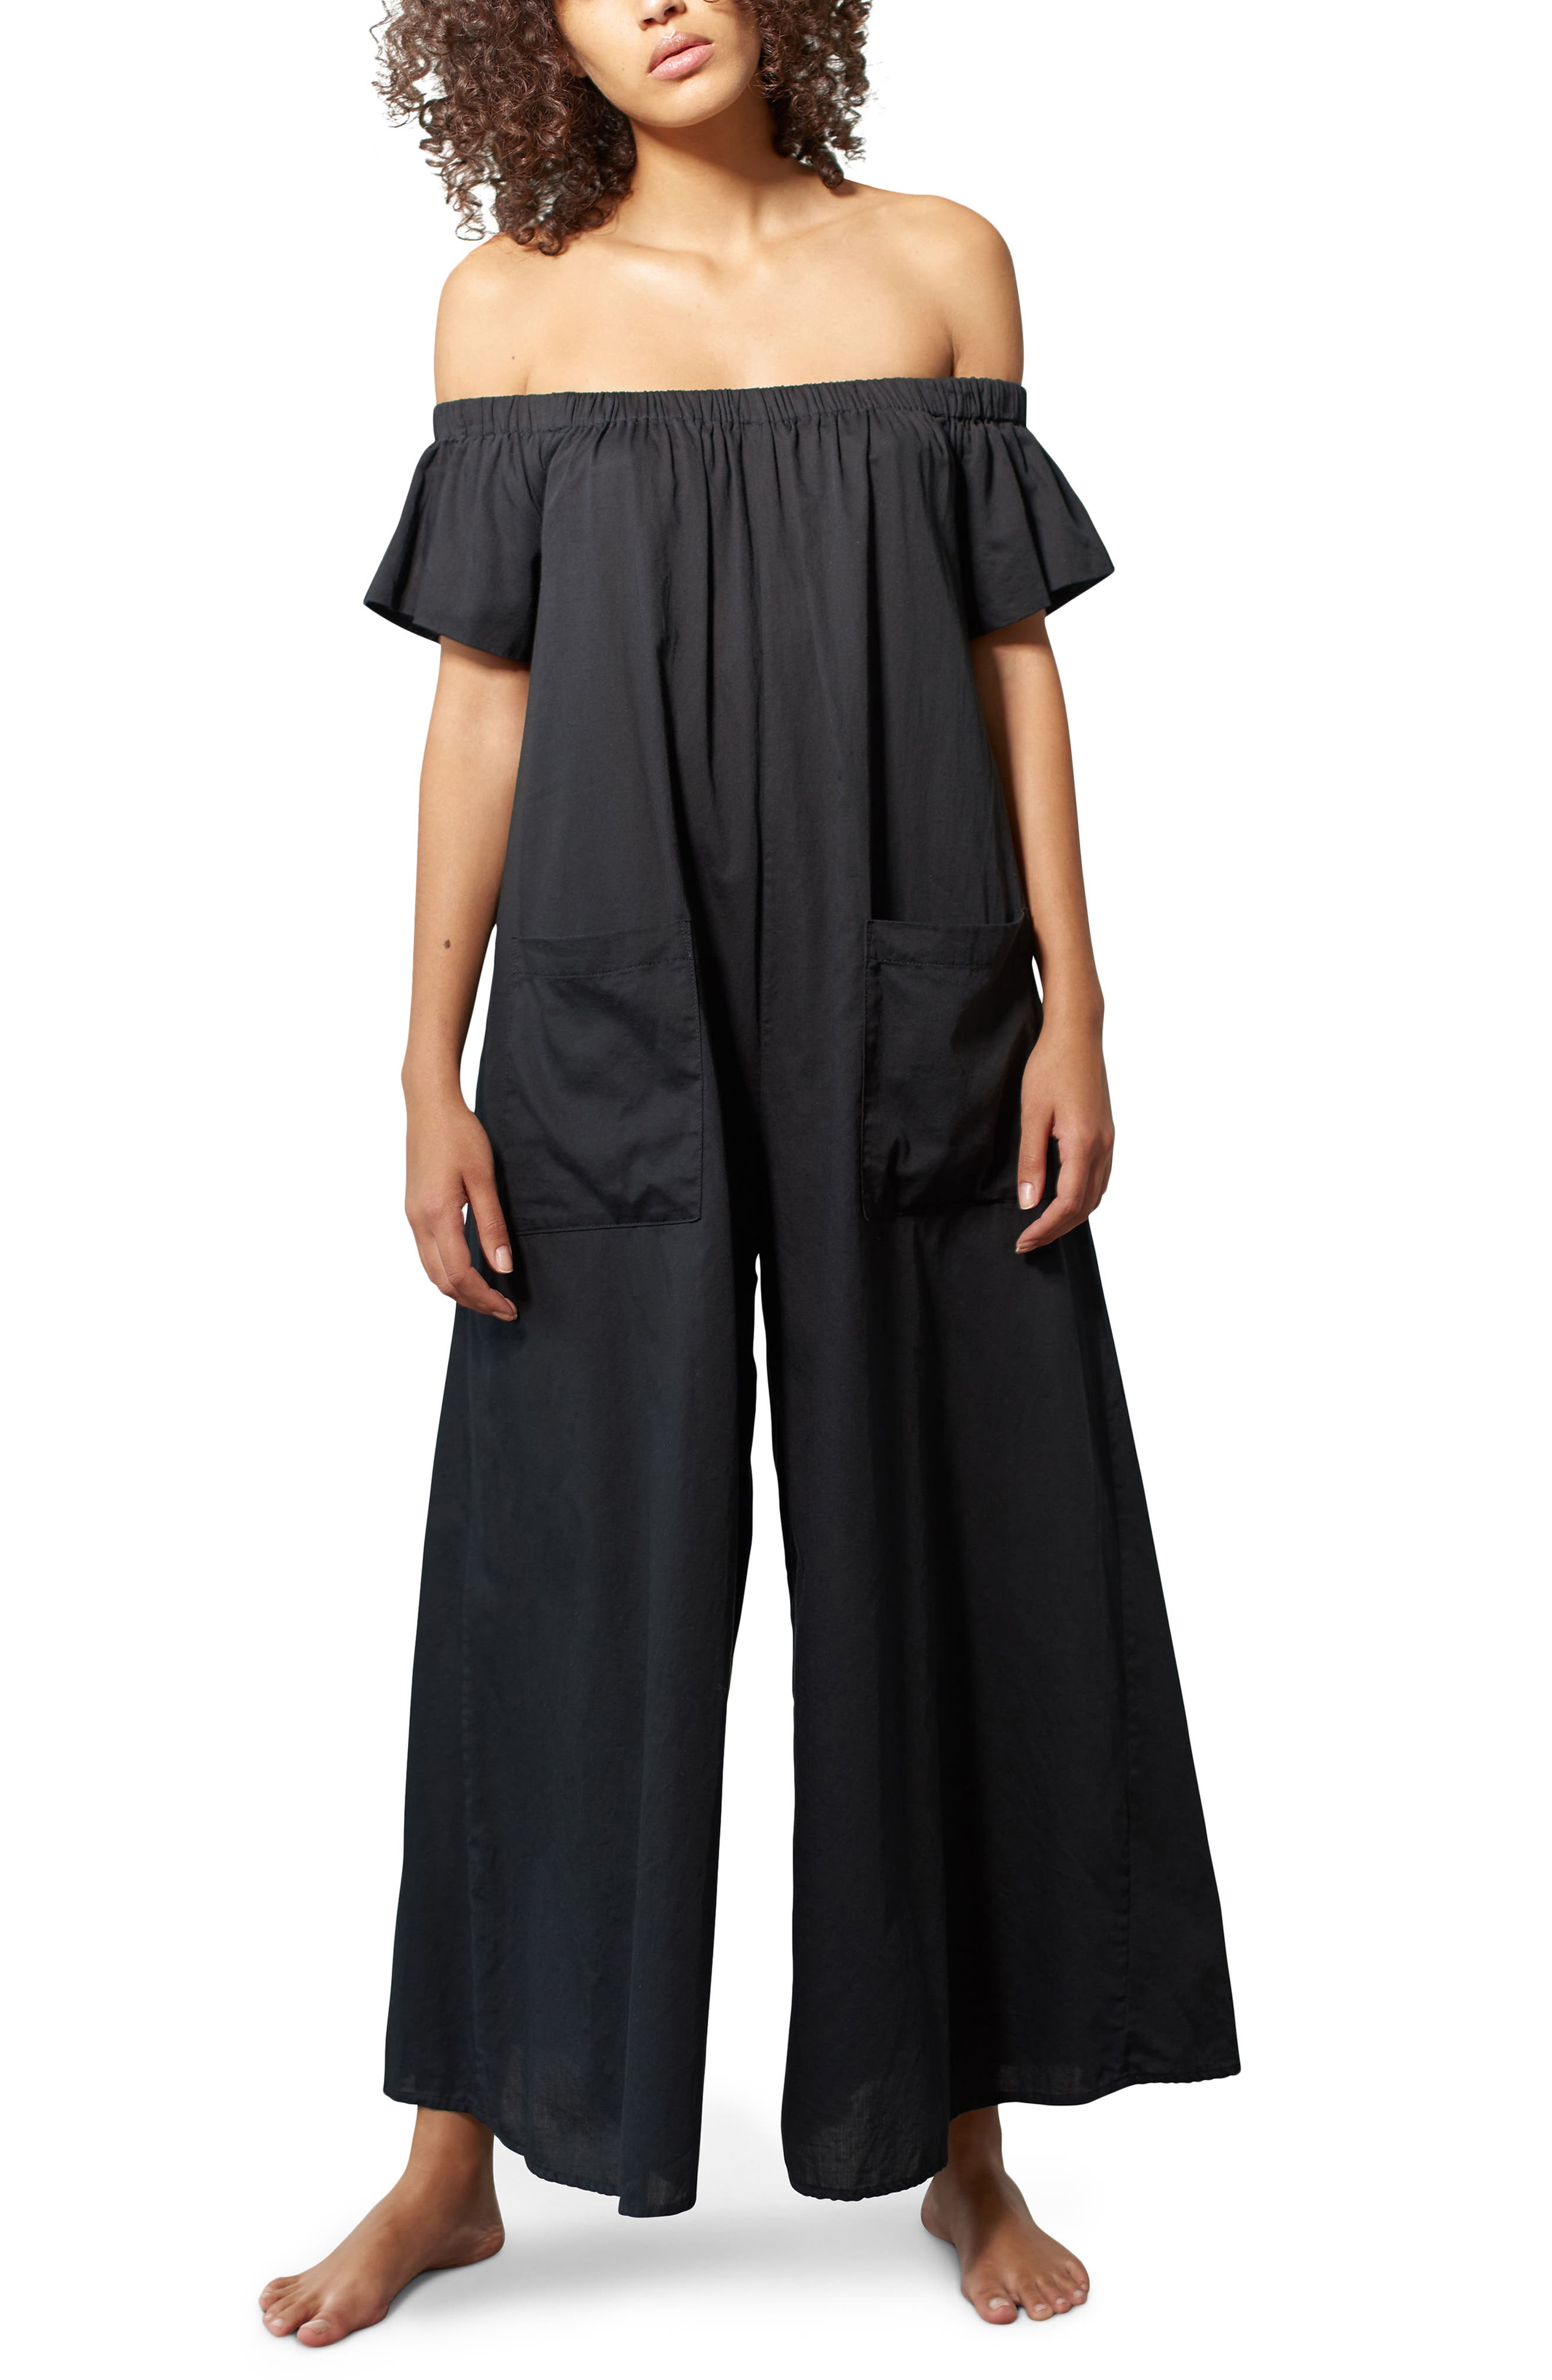 Blanche Off the Shoulder Cover-Up Jumpsuit,                             Main thumbnail 1, color,                             001